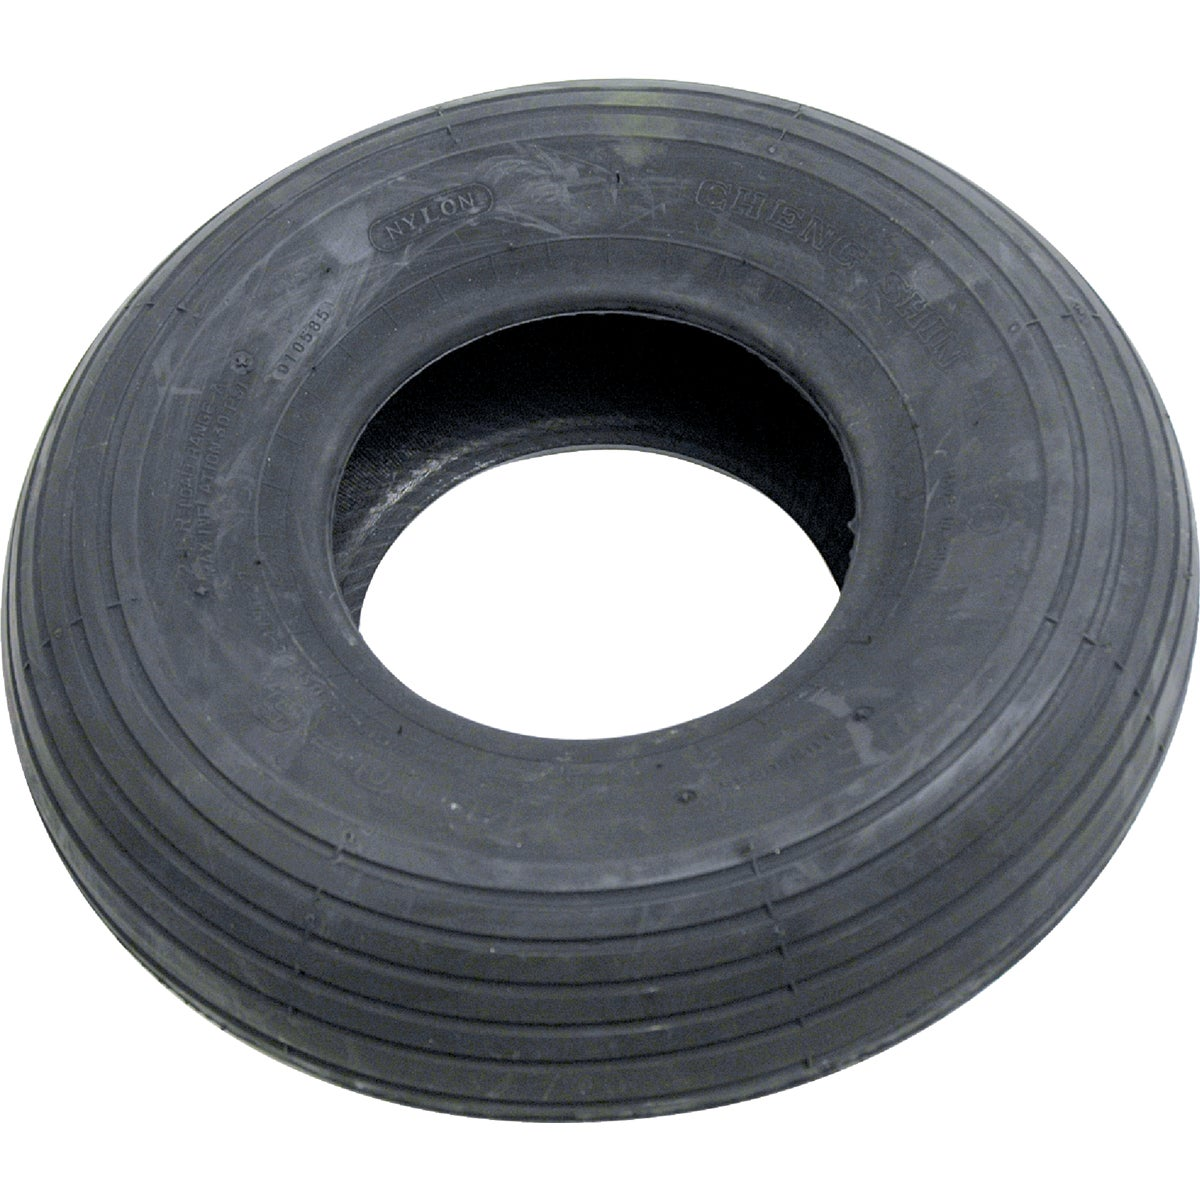 400X6 REPL RIBBED TIRE